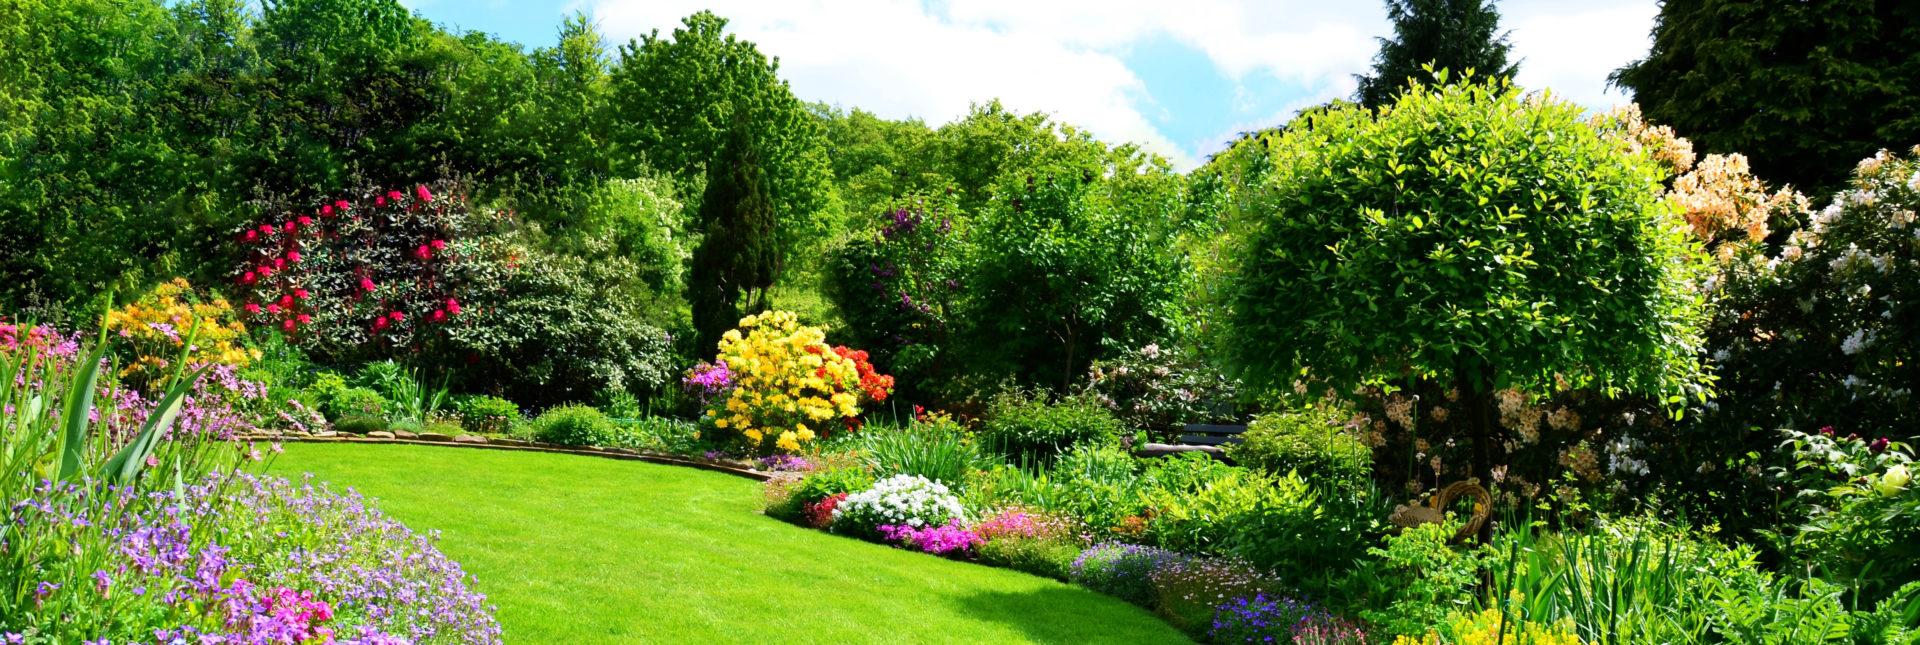 The Benefits of Getting Professional Landscape Maintenance Services | Landscape Maintenance Company in Highland Park, Texas